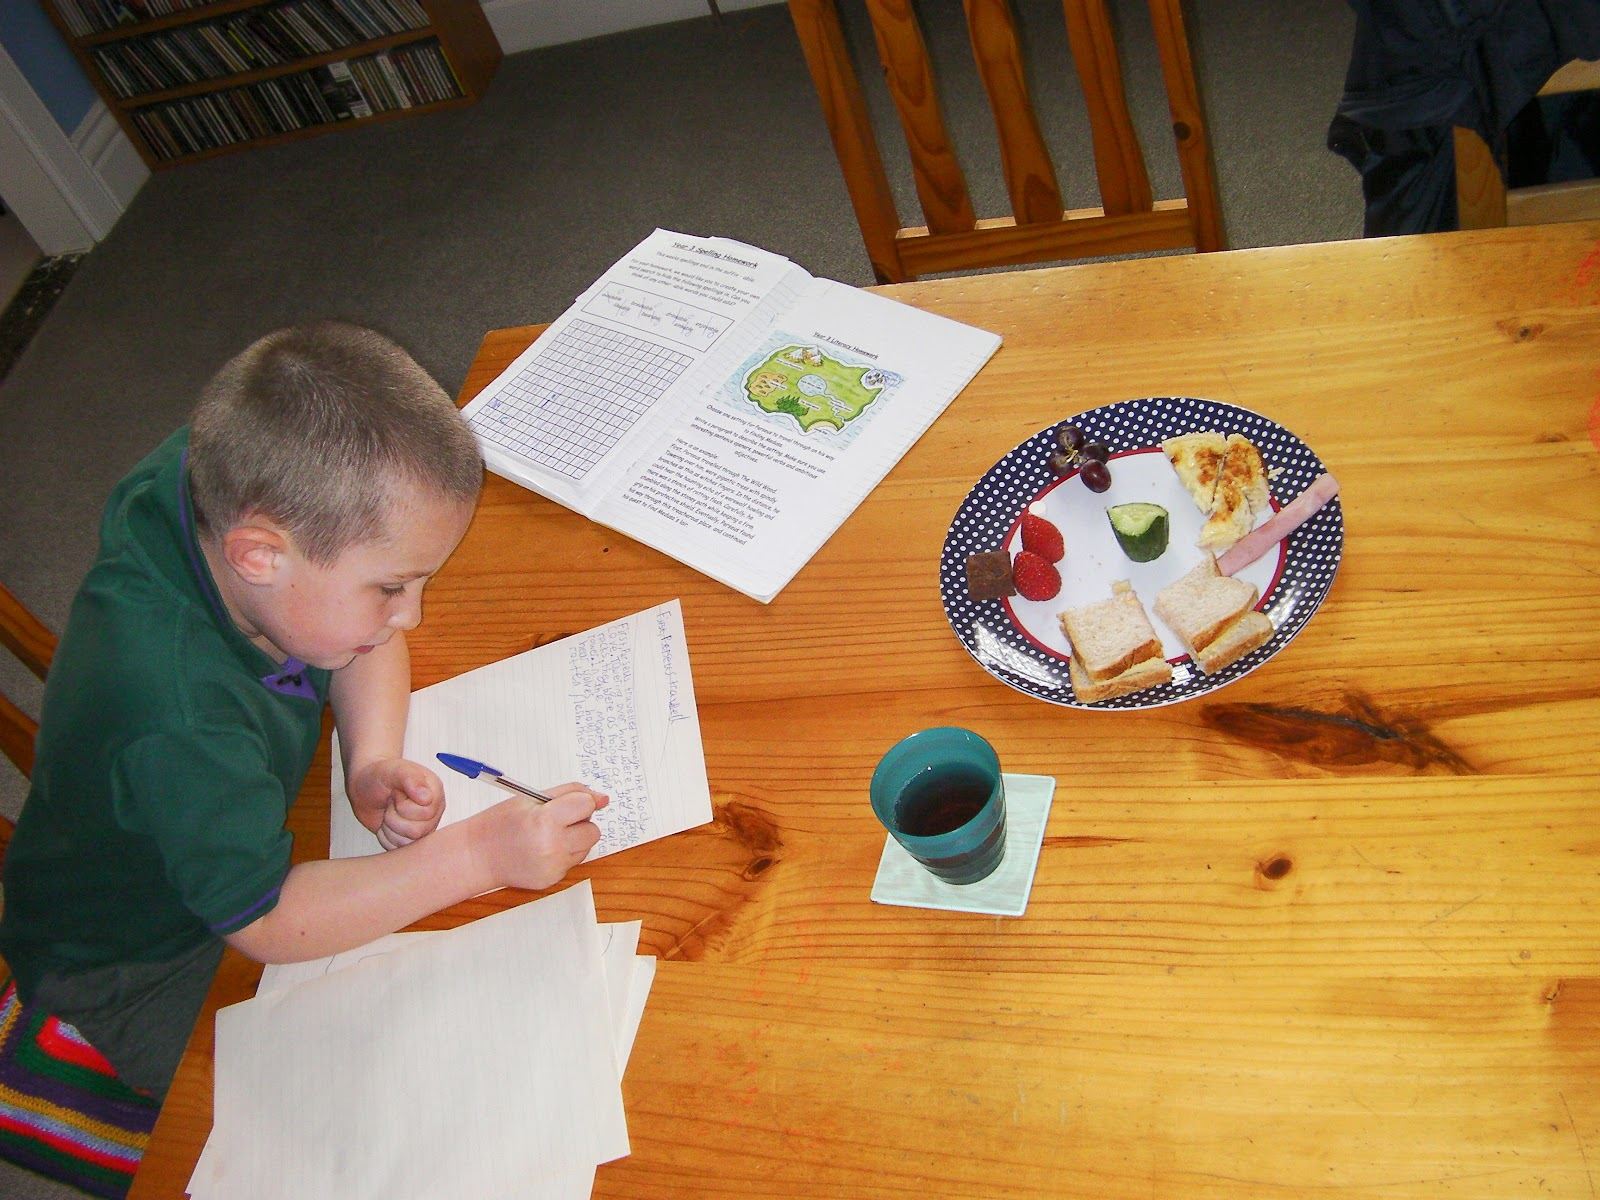 afternoon snack with perseus and mythical creatures homework project